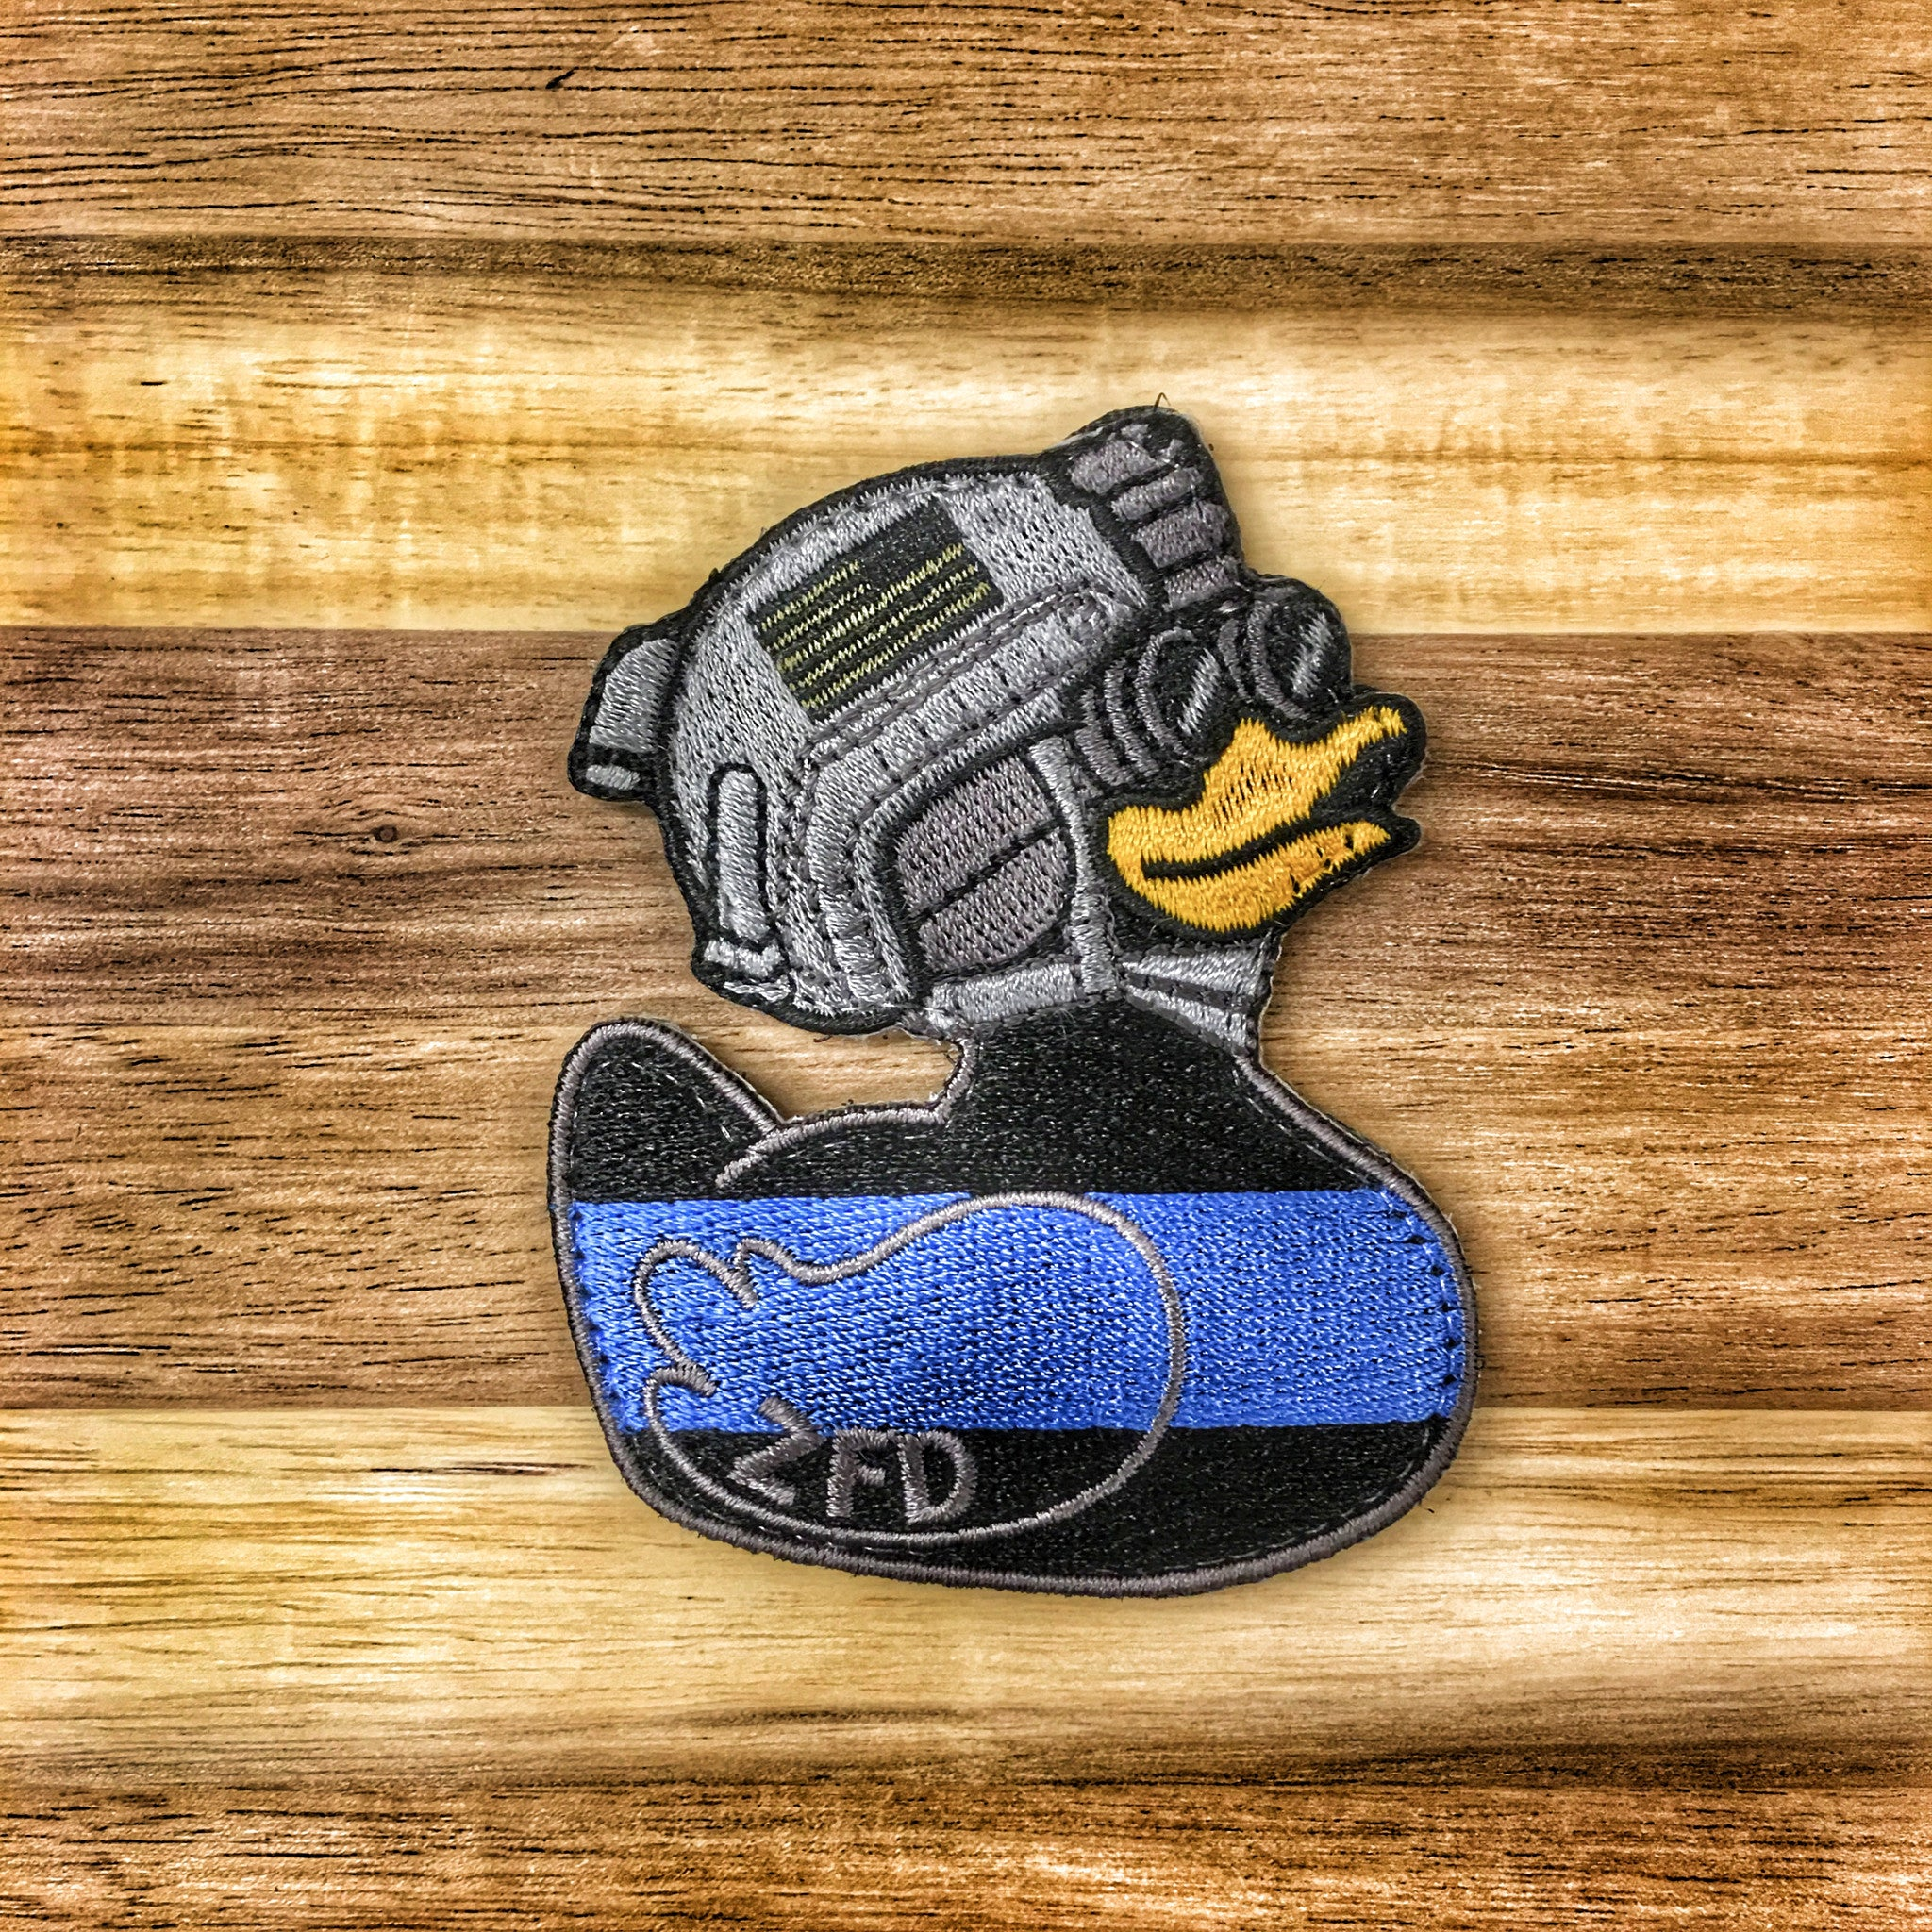 "DUMP BOX ZERO FUCKS DUCK ""ZFD"" MORALE PATCH - THIN BLUE LINE"